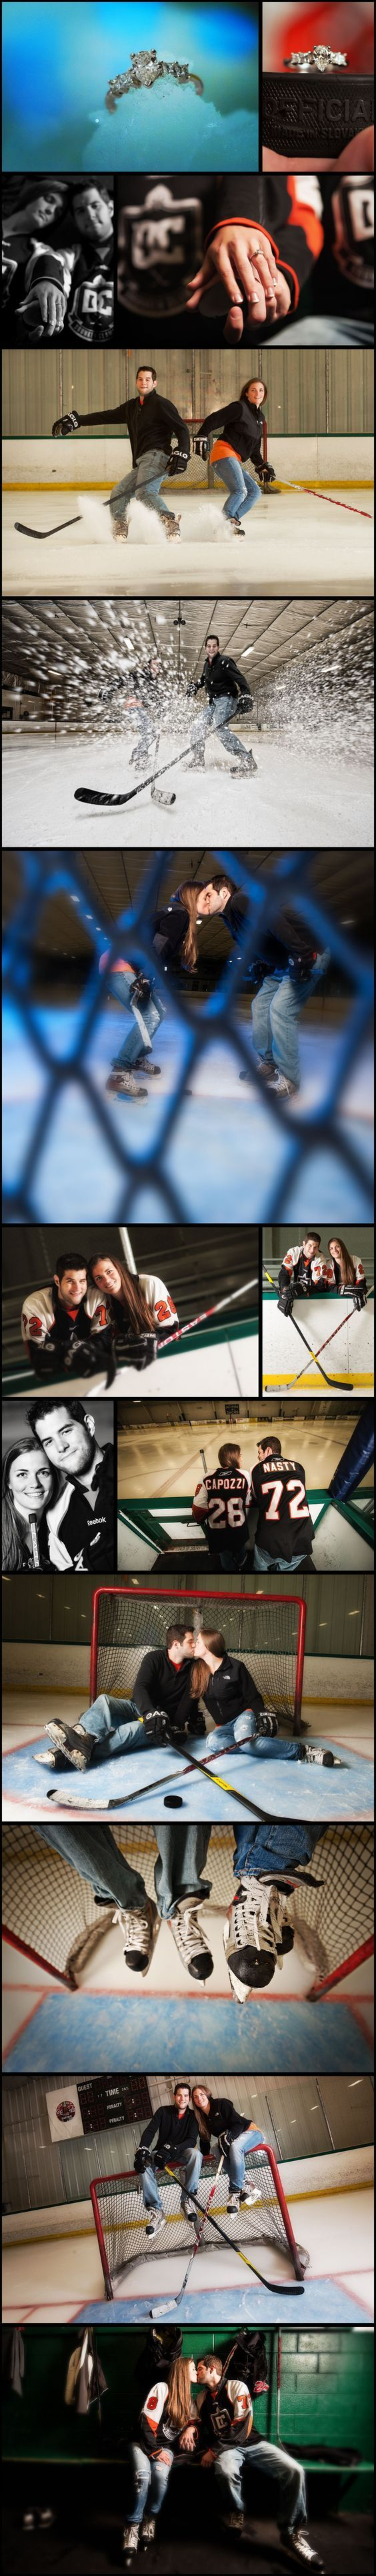 SO MANY great hockey related engagement photos...especially the ring on the puck...awesome! #hockeyweddingtheme #hockeyweddingideas #hockeyweddingphotos #hockeyweddingevents #hockeyweddingdecorations #hockeyweddingcenterpieces #hockeyweddingcake #hockeywedding favors #icehockeywedding #hockeyweddingdress #hockeyweddinginvitations #hockeyweddingring #hockeyweddingreception #fieldhockeywedding #hockeyweddingshower